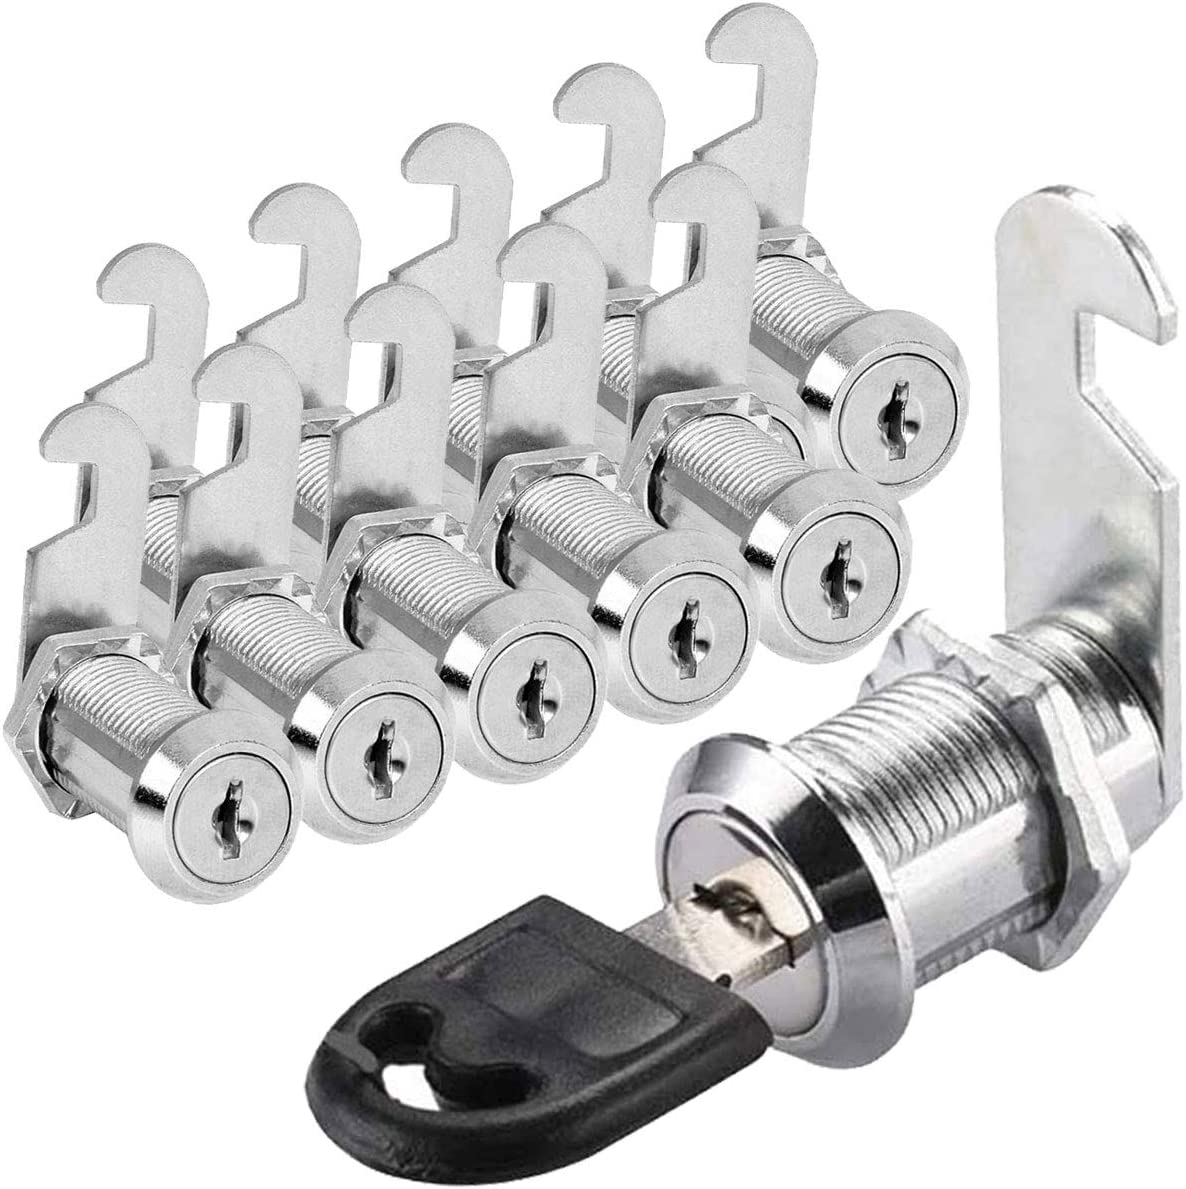 10 Pack Cam Locks Keyed Alike, 1-1/8 Inch (30mm) File Cabinet Drawer Mailbox RV Door Cylinder Lock Replacement, Chrome-Plated Zinc Alloy Safety Lock fits on 1